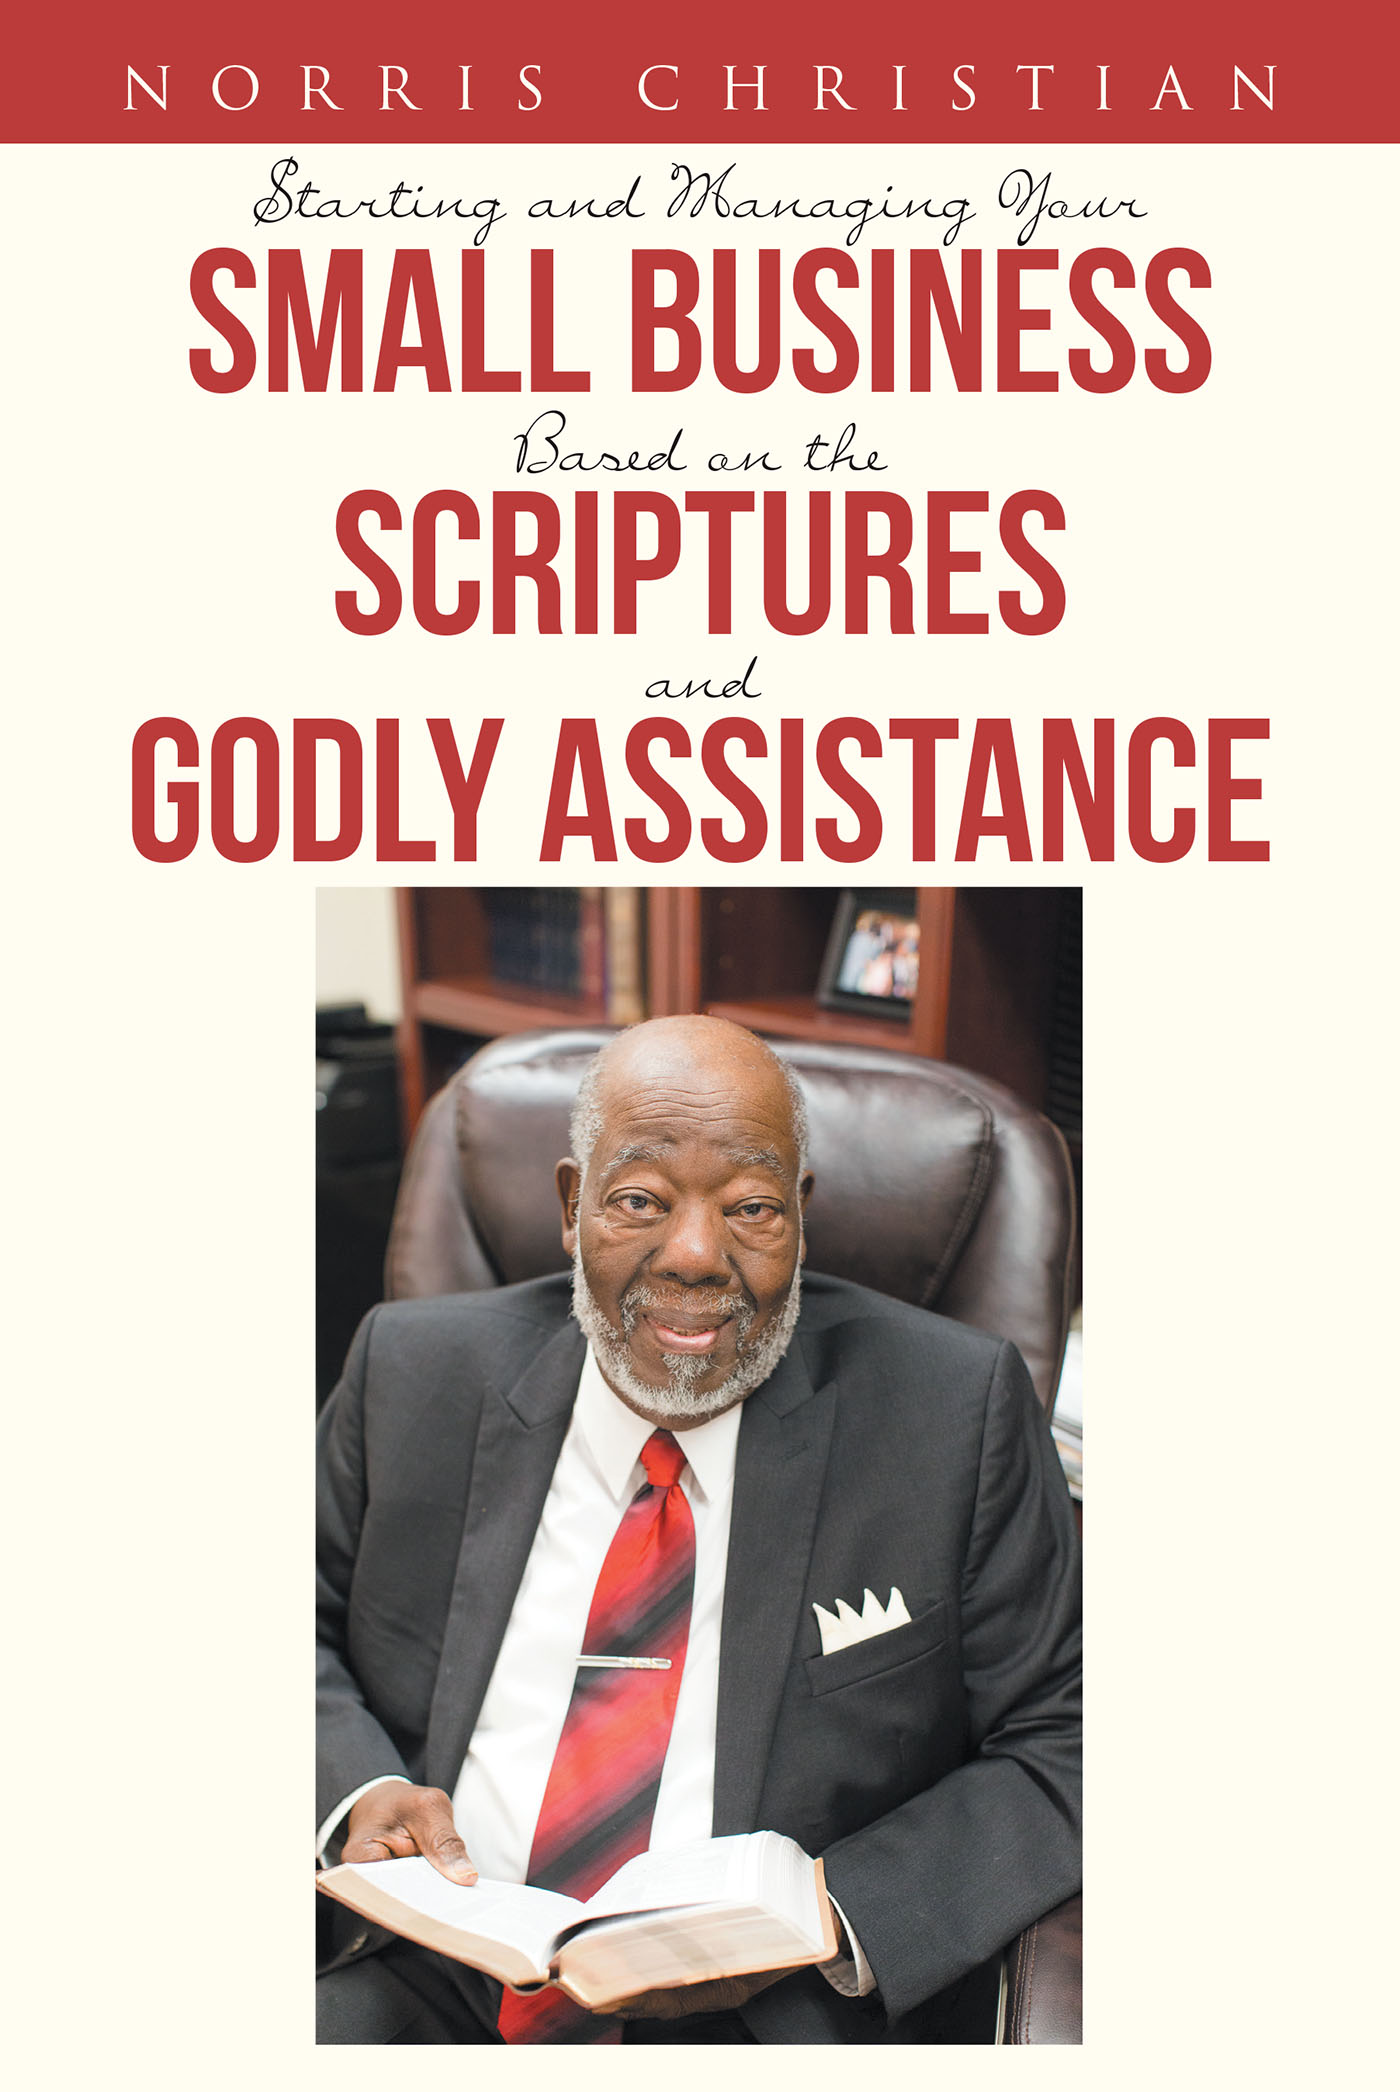 dcdbe2483cb Starting and Managing Your Small Business Based on the Scriptures and Godly  Assistance